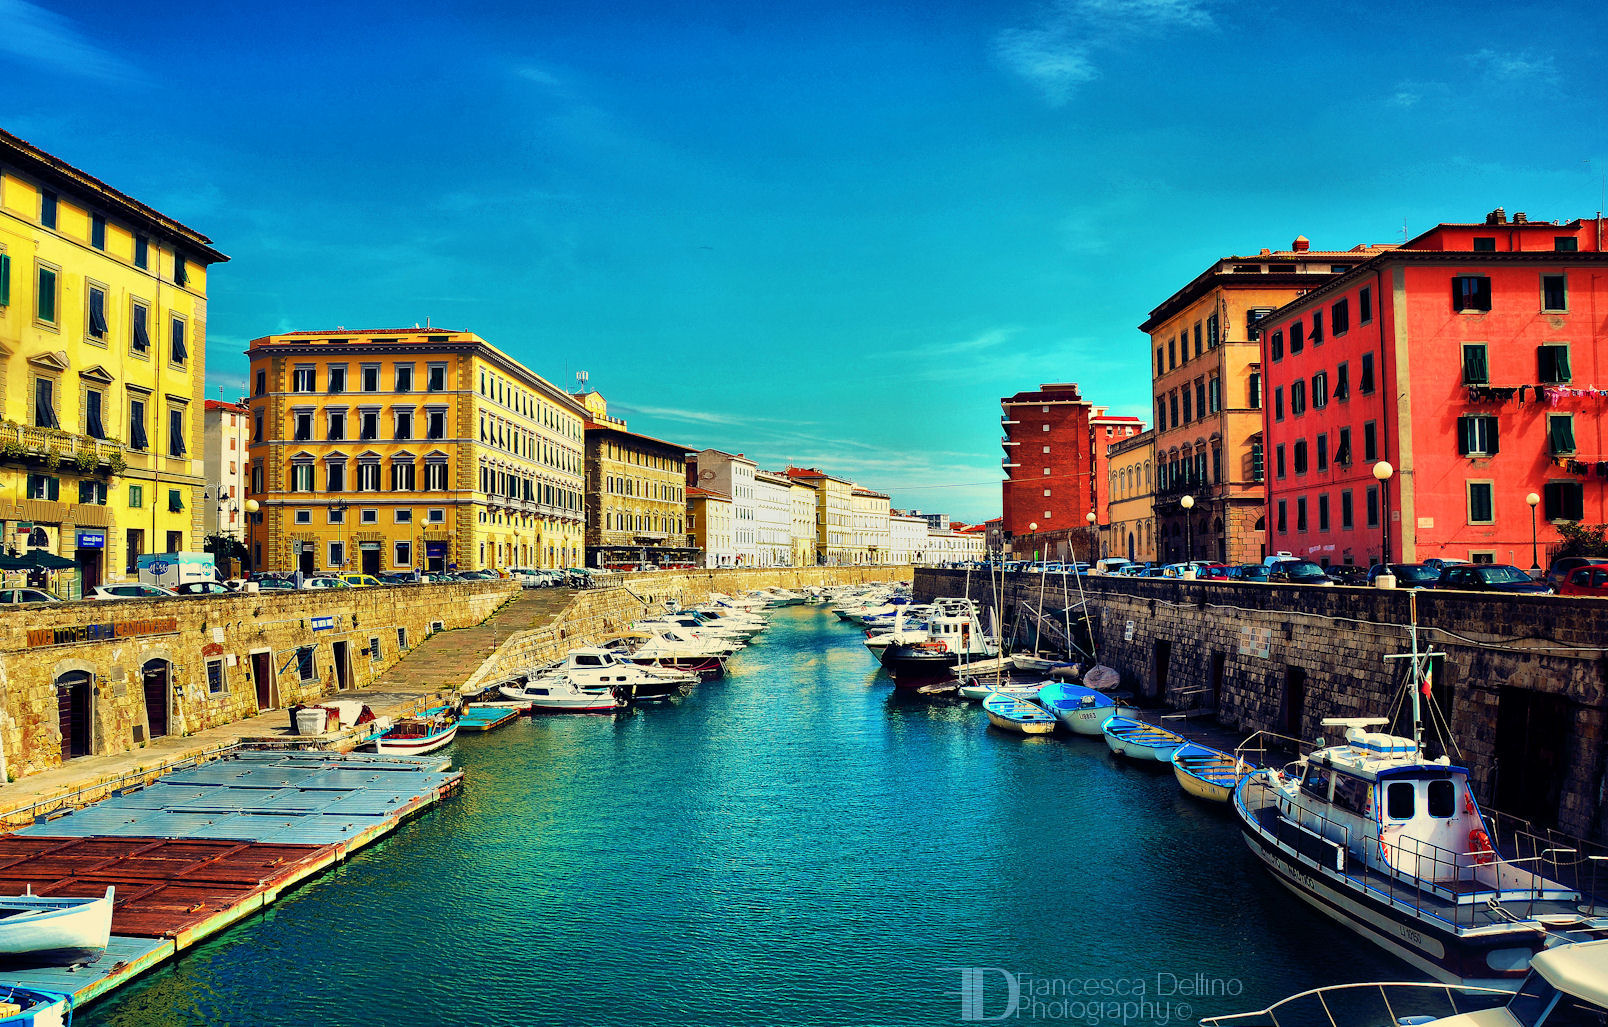 A day in Livorno by FrancescaDelfino on DeviantArt